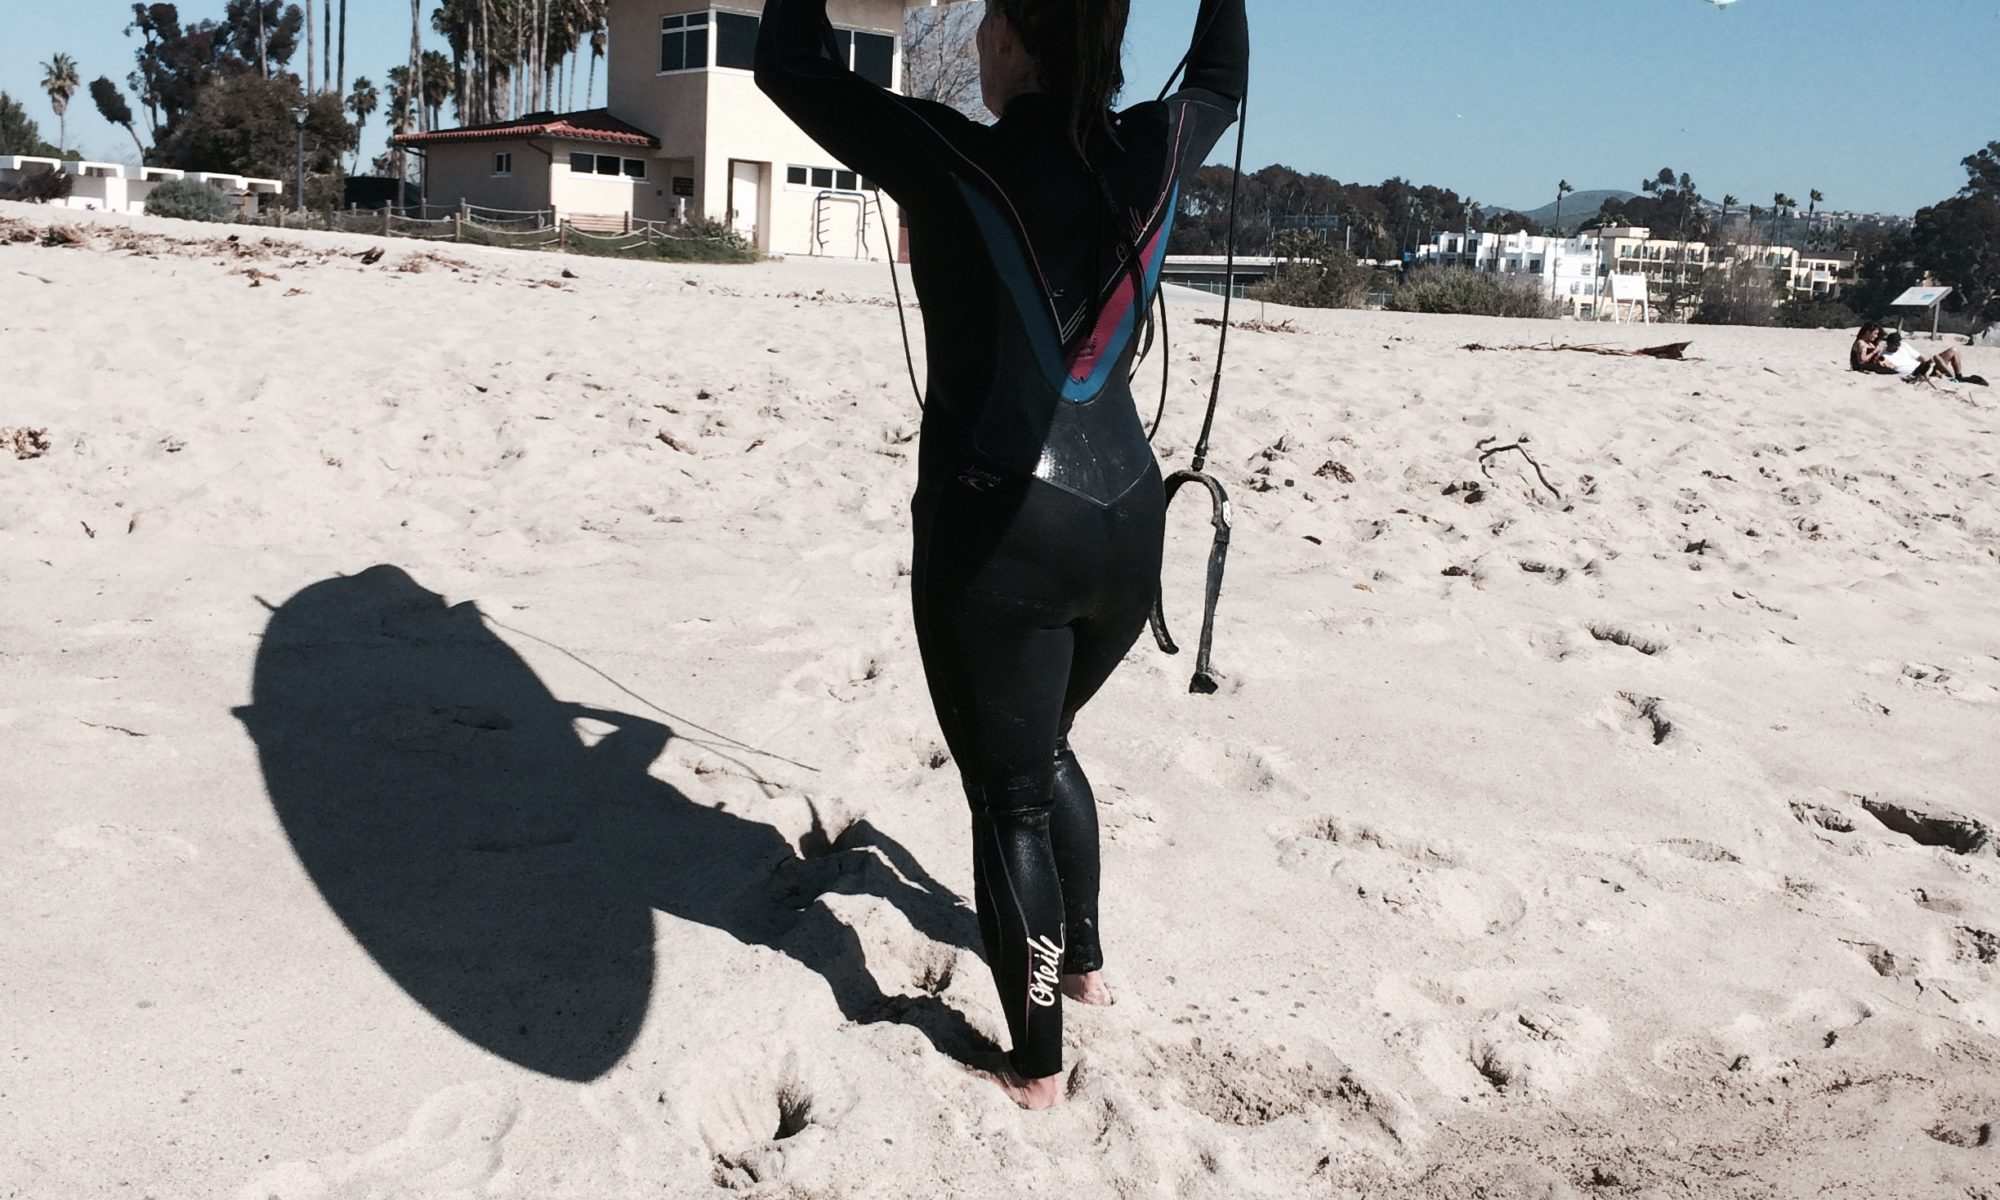 #mile age surfer, #baby boomer life